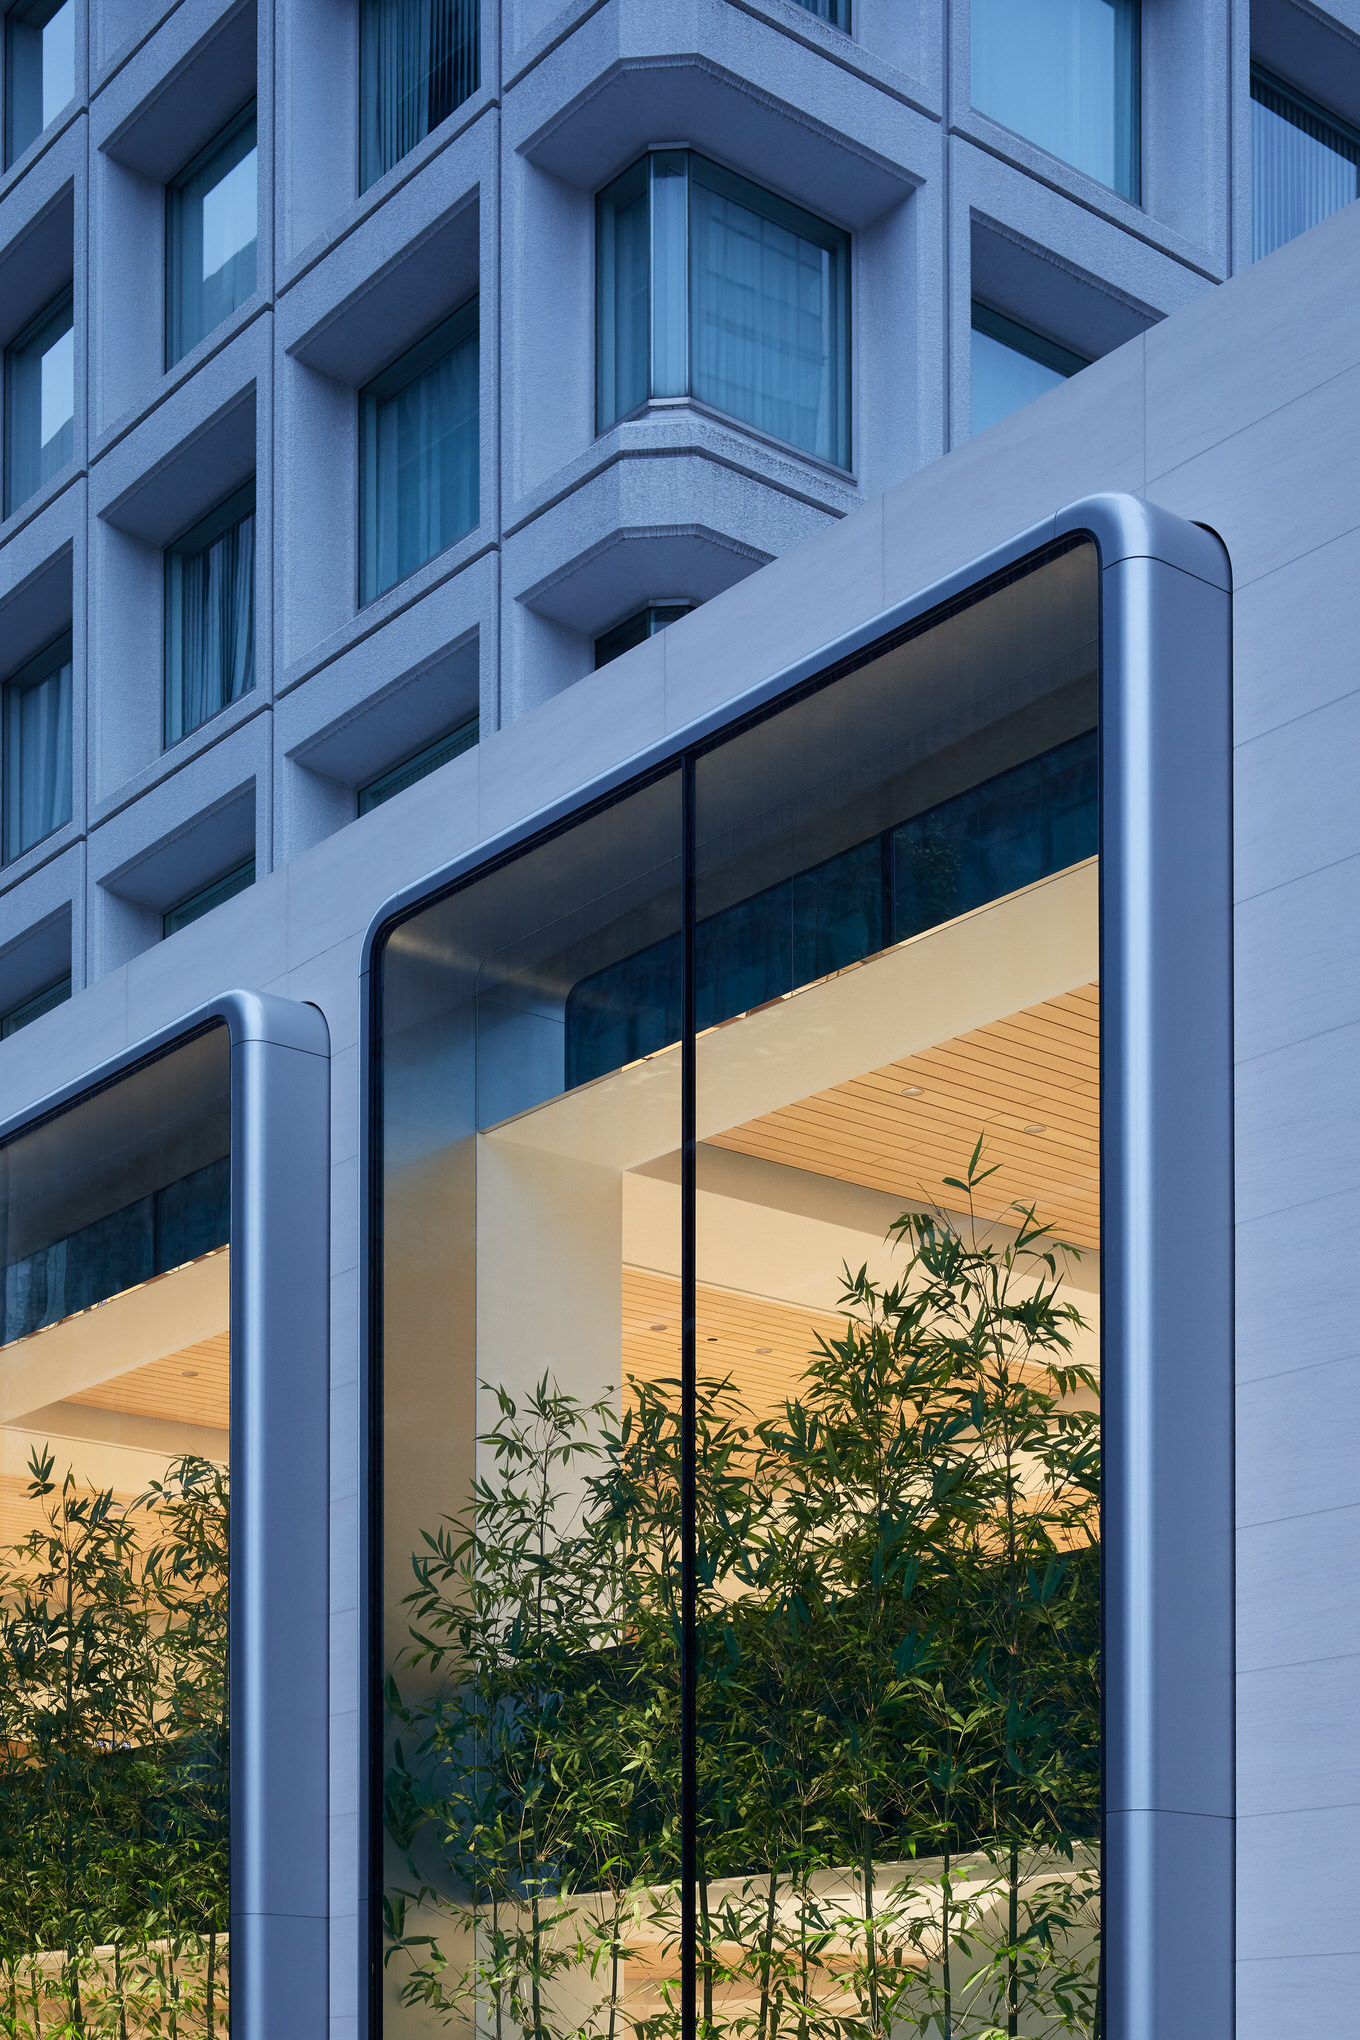 Apple-largest-store-in-Japan-opens-saturday-in-Tokyo-two-story-windows-090419